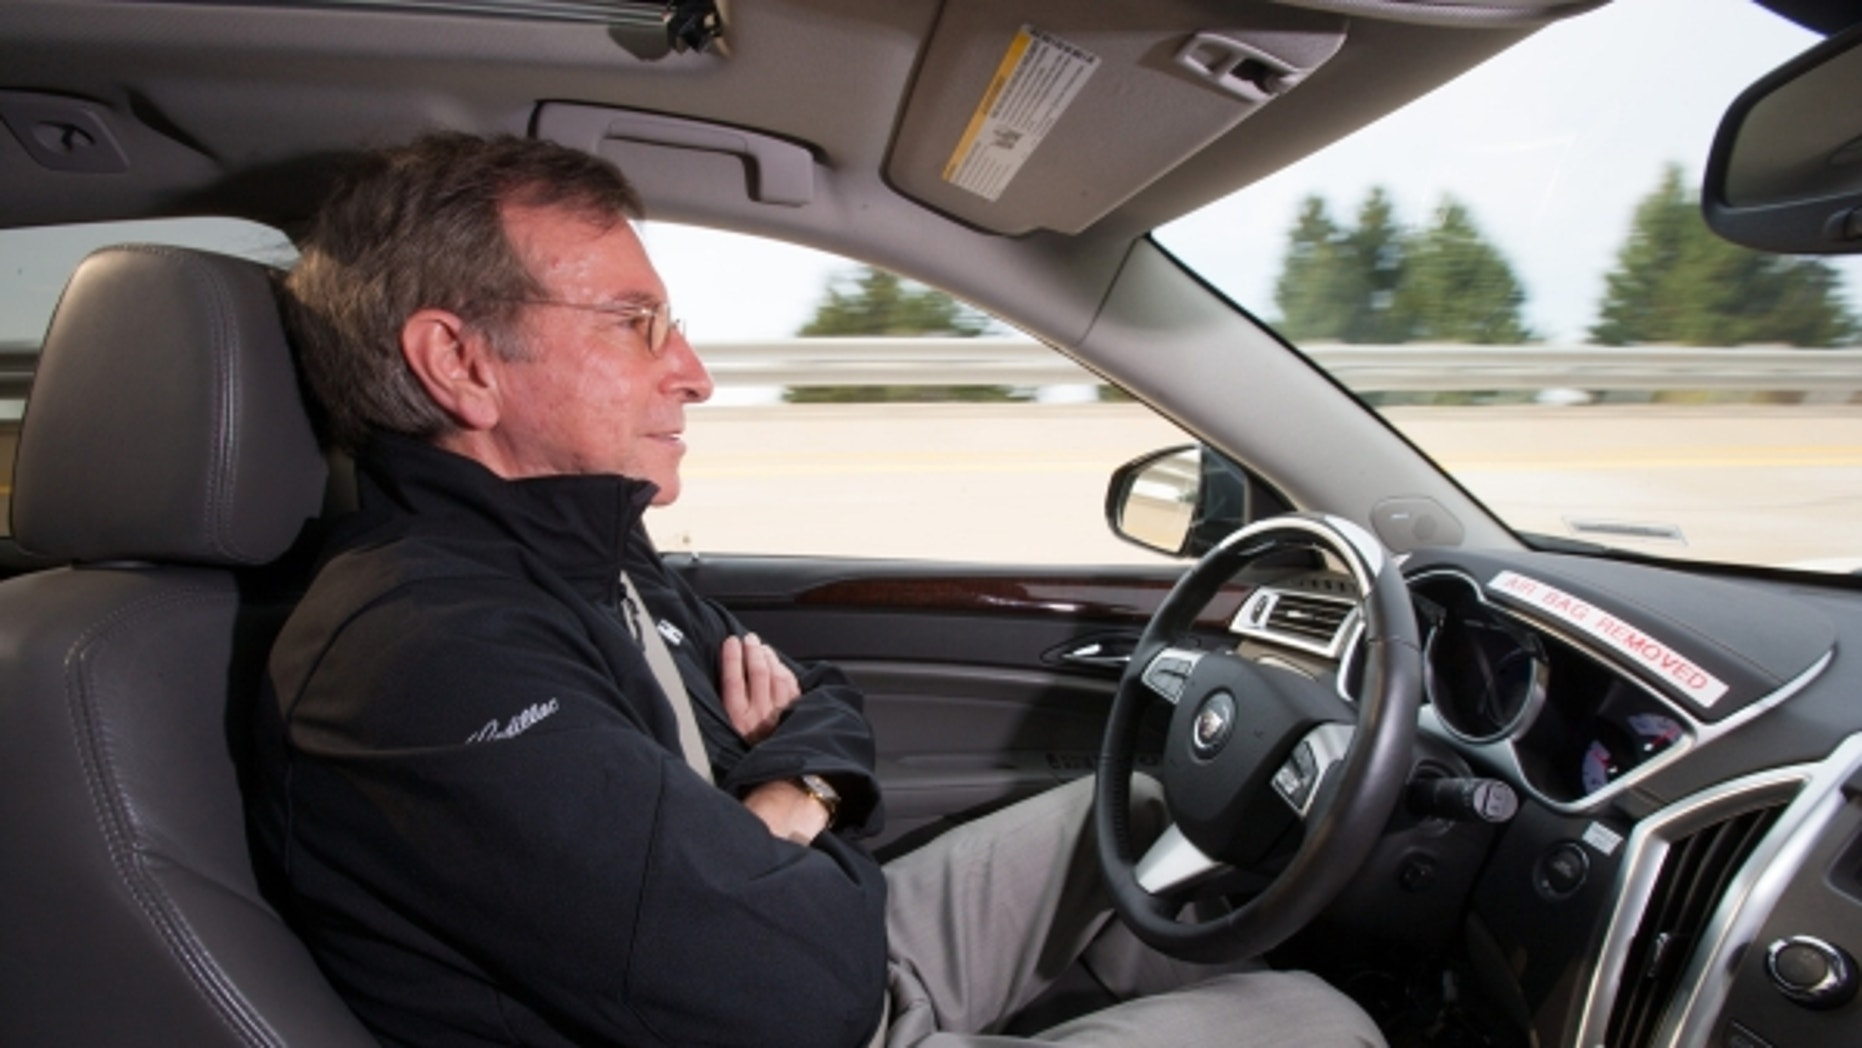 """General Motors Staff Researcher Dr. Jeremy Salinger road tests a Cadillac semi-autonomous driving technology it calls """"Super Cruise"""" that is capable of fully automatic steering, braking and lane-centering in highway driving under certain optimal conditions Friday, March 23, 2012 in Milford, Michigan. Super Cruise is designed to ease the driver's workload on the freeway, in both bumper-to-bumper traffic and on long road trips by relying on a fusion of radar, ultrasonic sensors, cameras and GPS map data. The system could be ready for production vehicles by mid-decade. (Photo by John F. Martin for Cadillac)"""